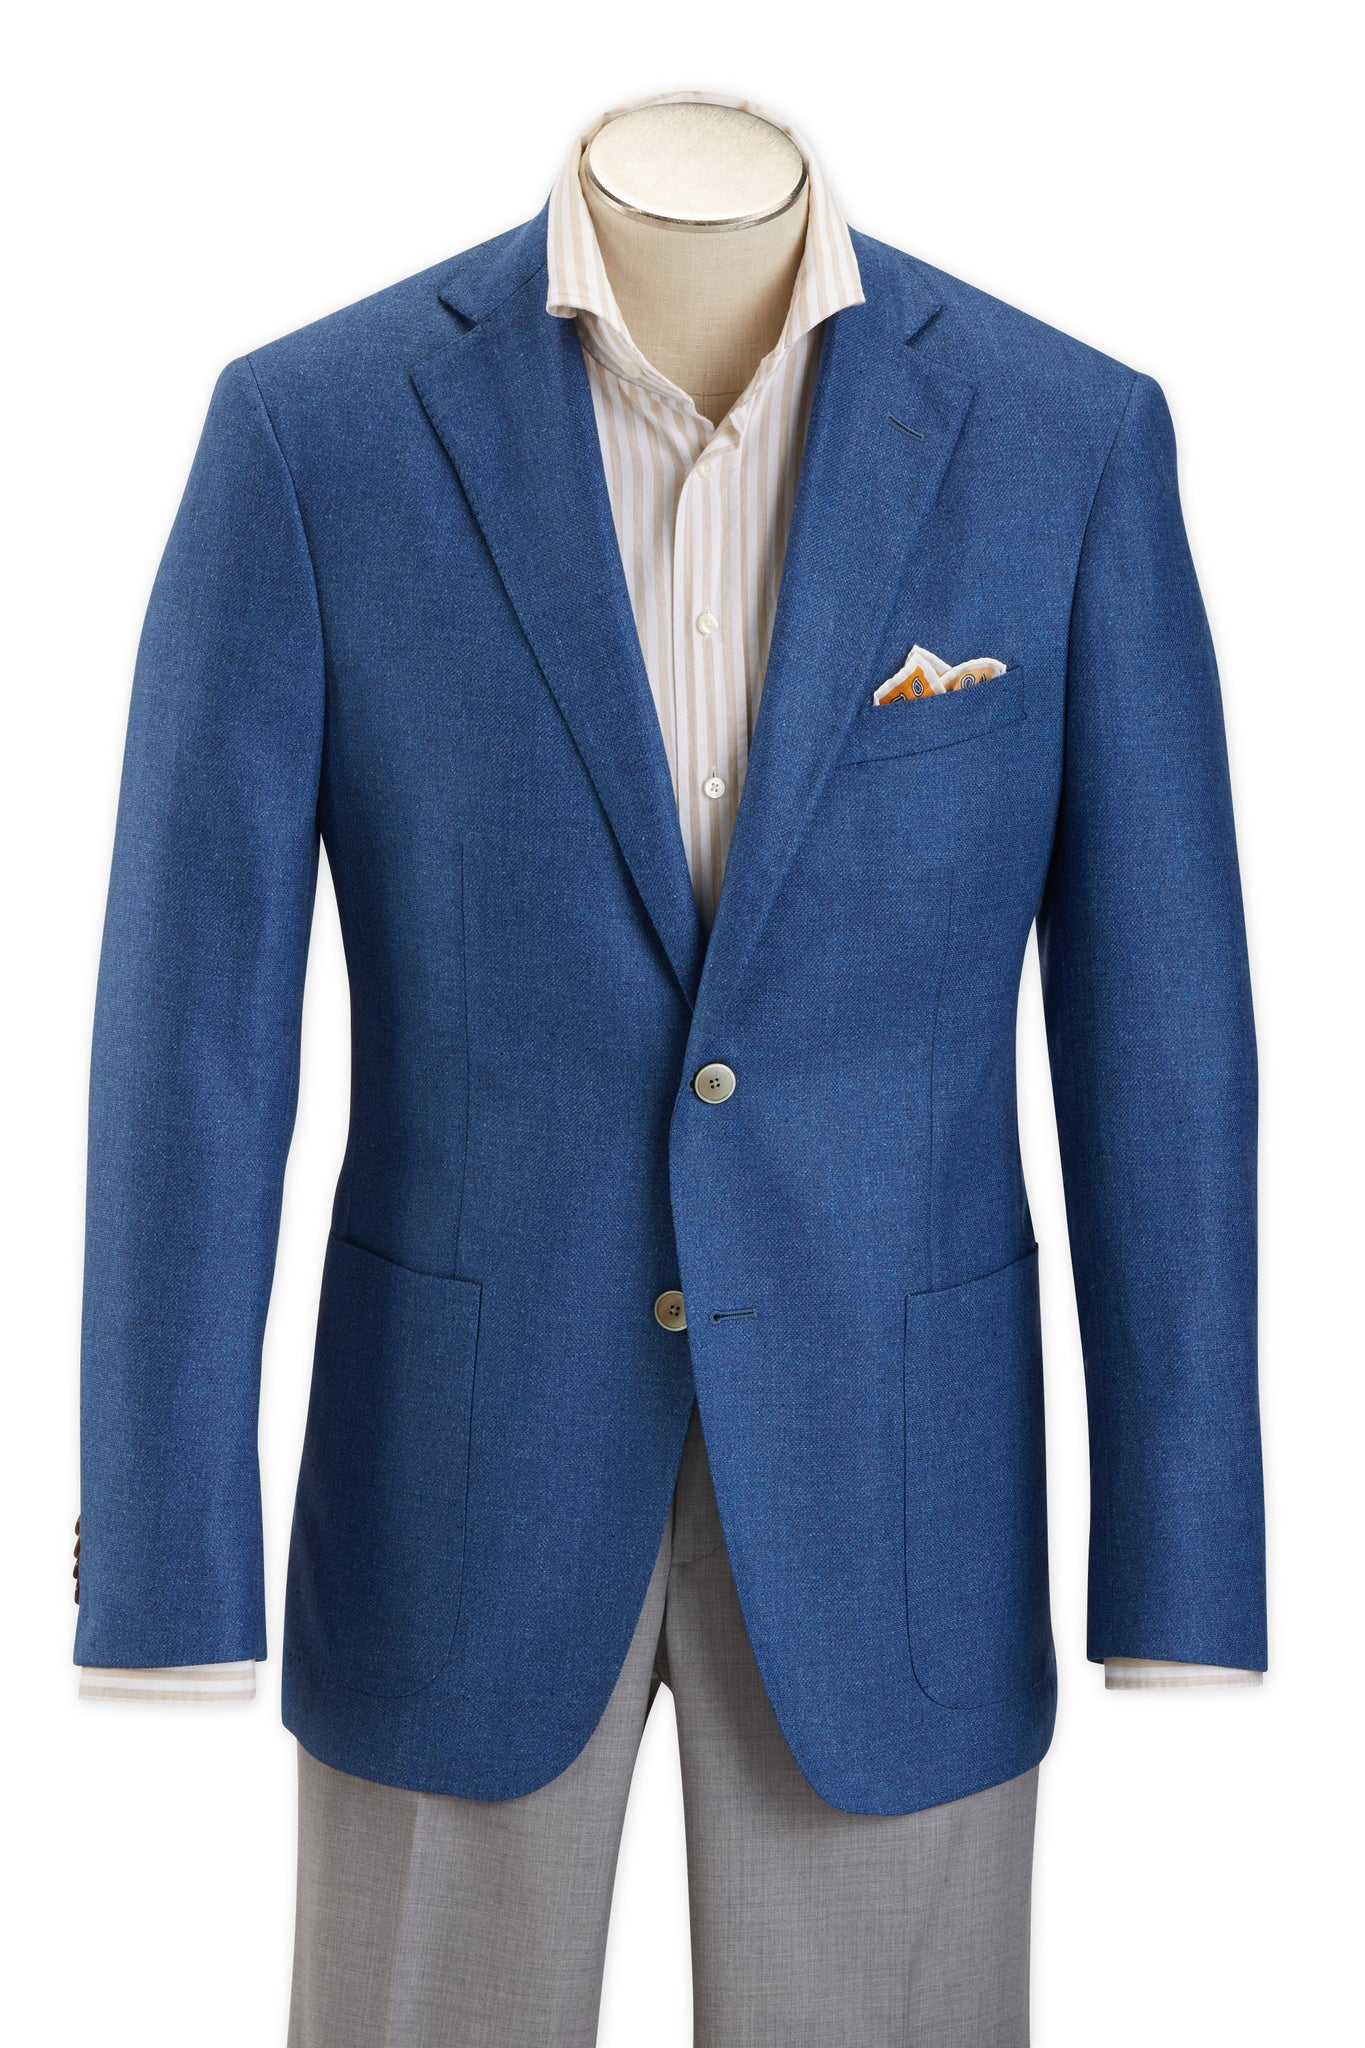 Modern Fit Heather Blue Wool Silk Sport Coat -  Hardwick.com